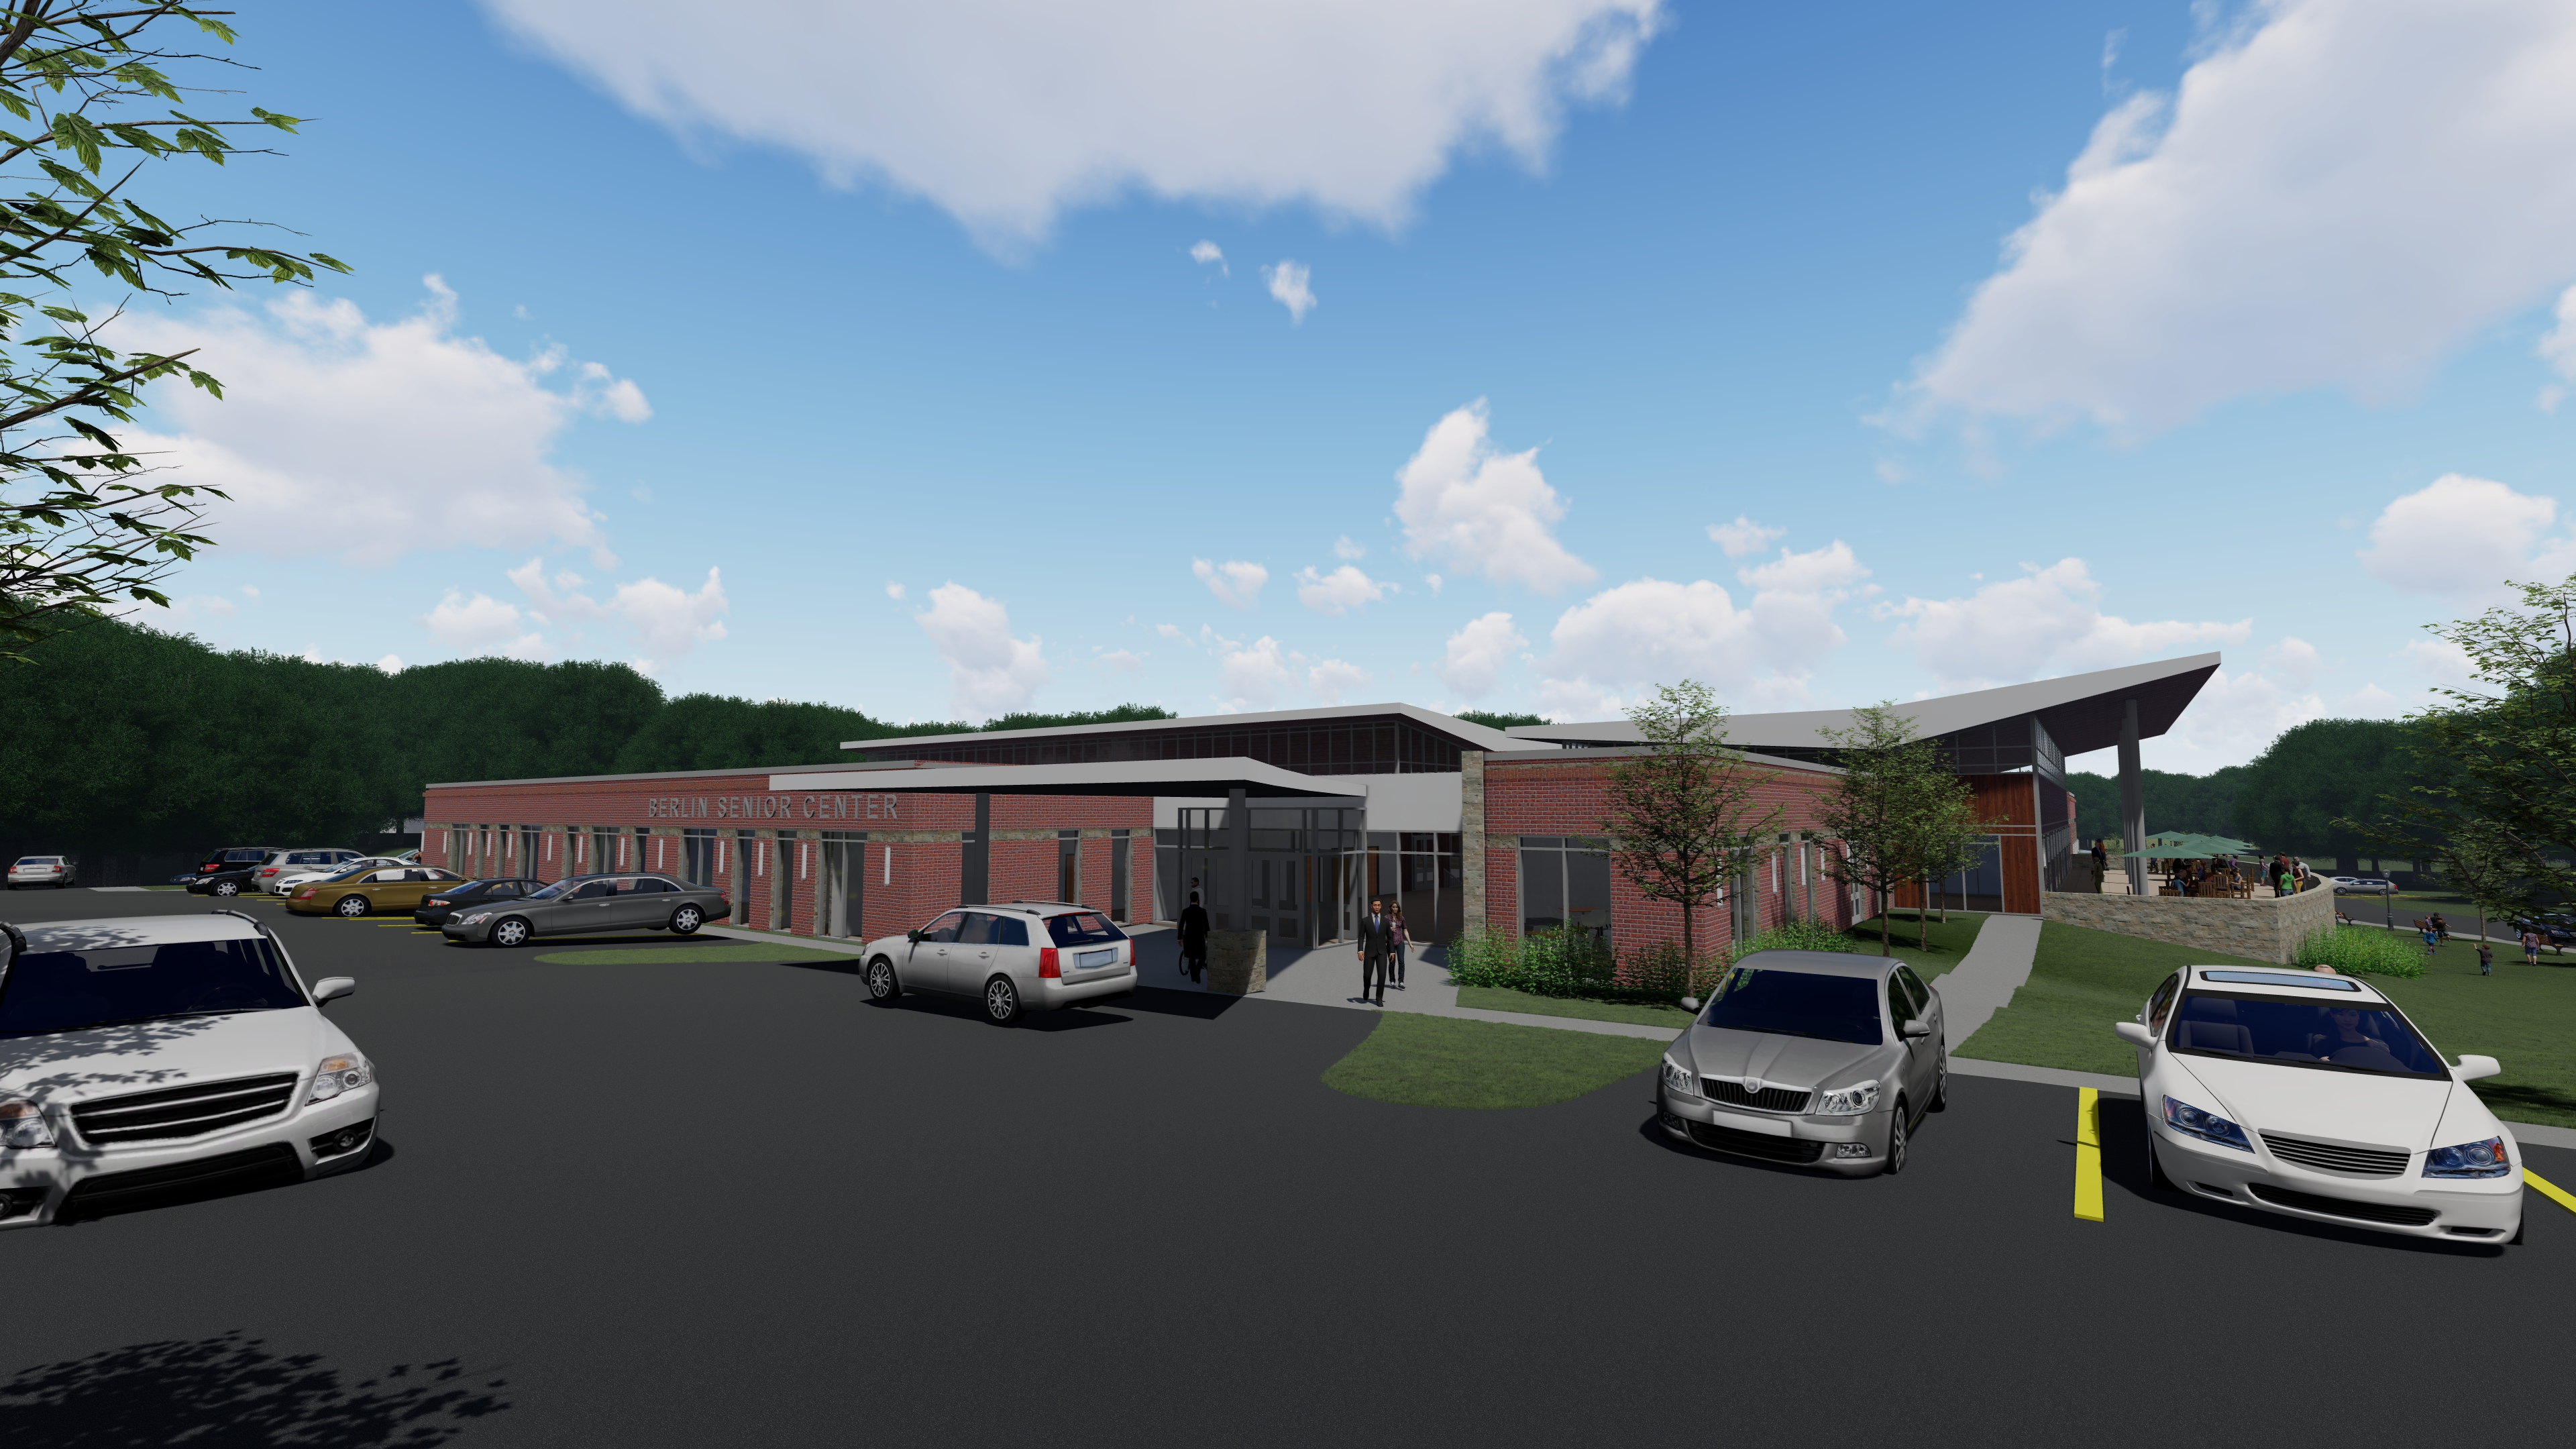 Design and Construction of the Proposed Berlin Community and Senior Center - Video and Information